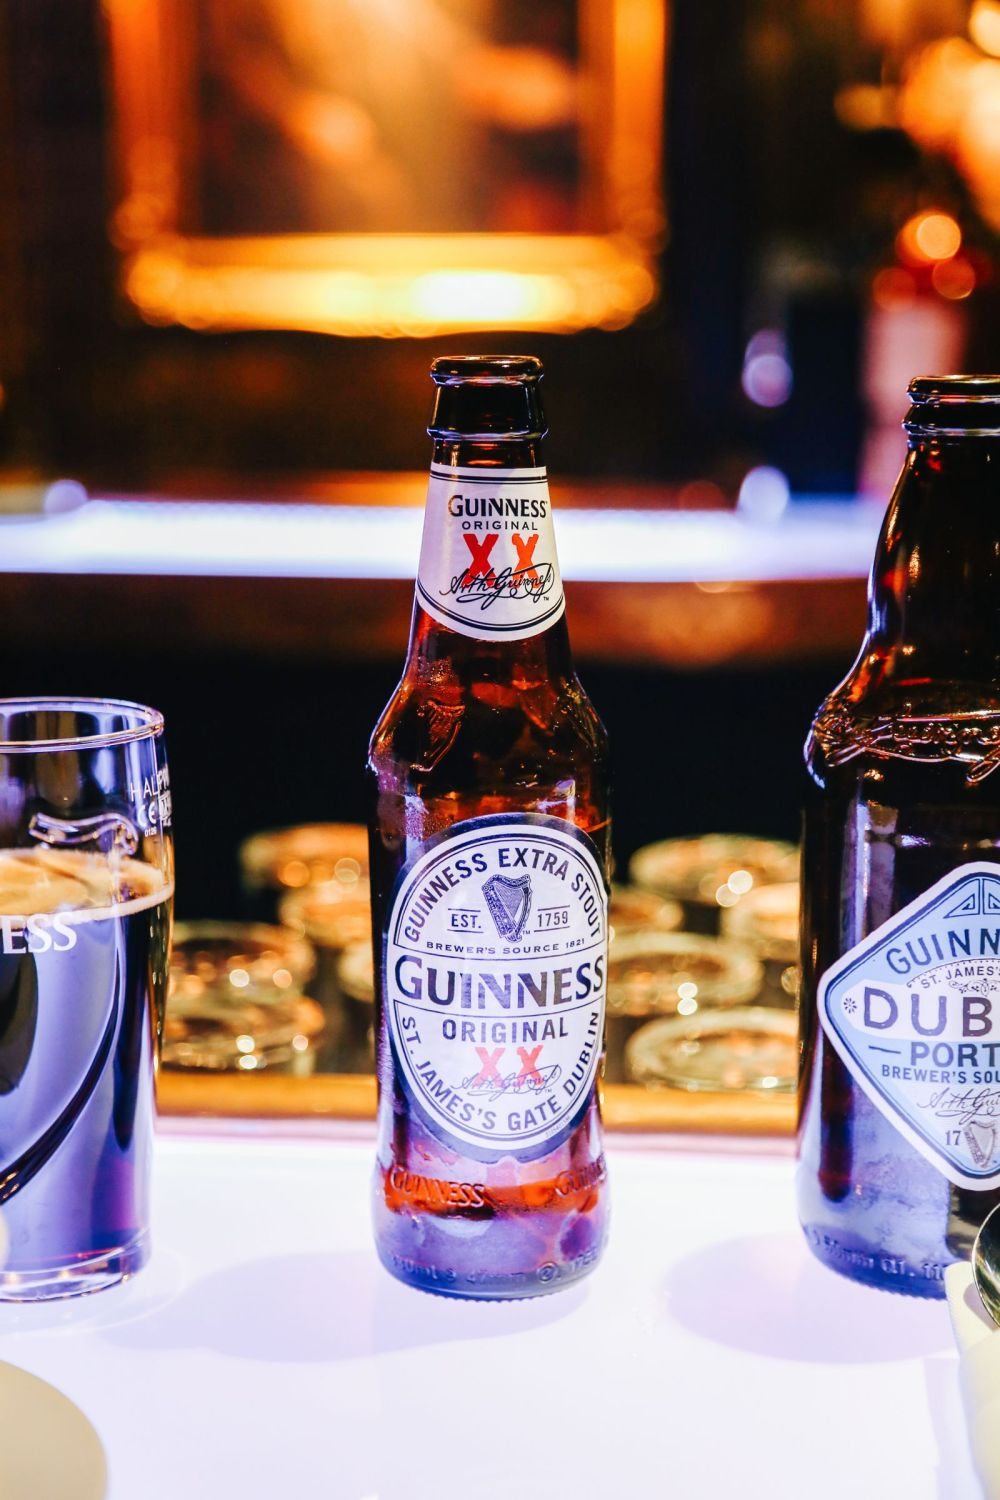 A Day At The Guinness Storehouse In Dublin, Ireland - Part 2 (1)